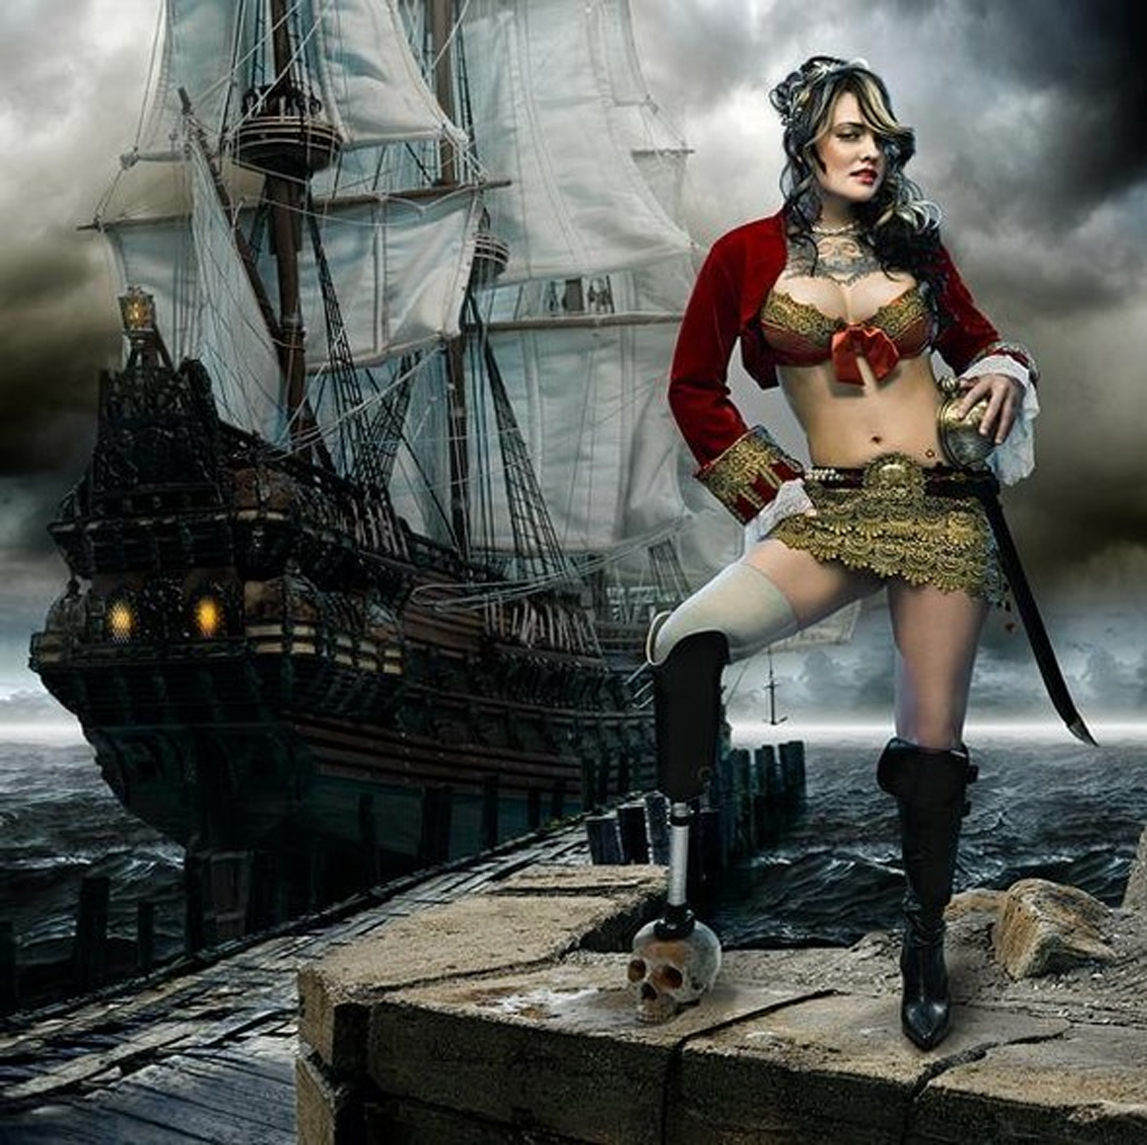 Pirate girl babes nude sex fashion porn star